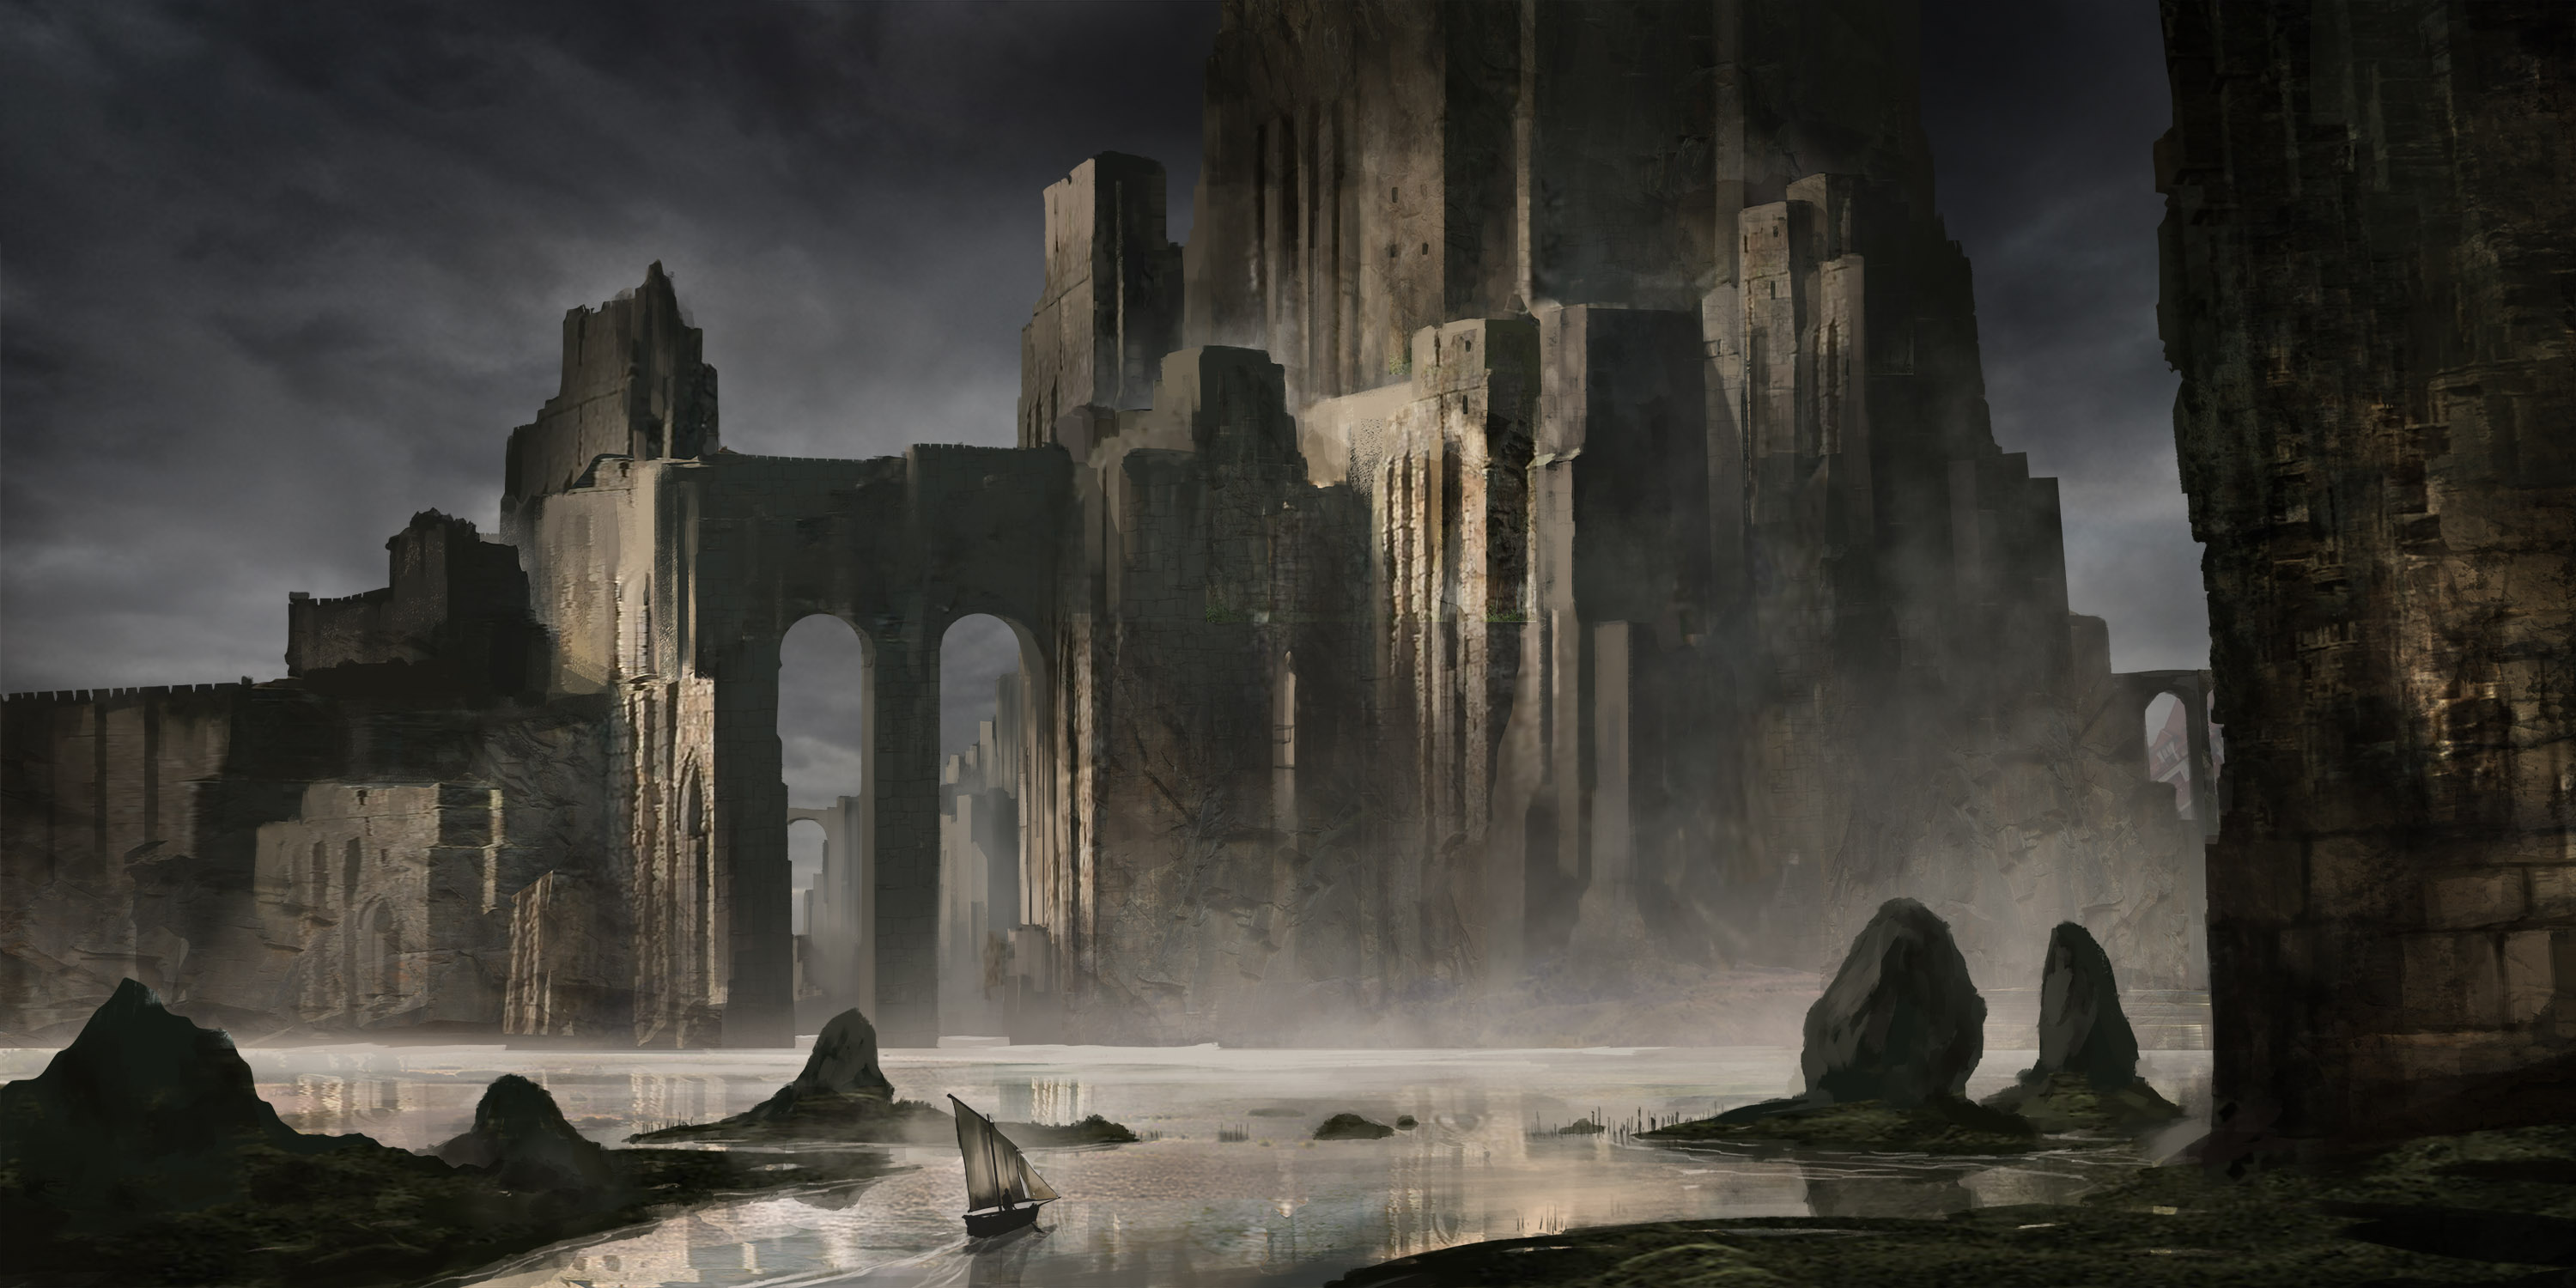 The Lost Fortress